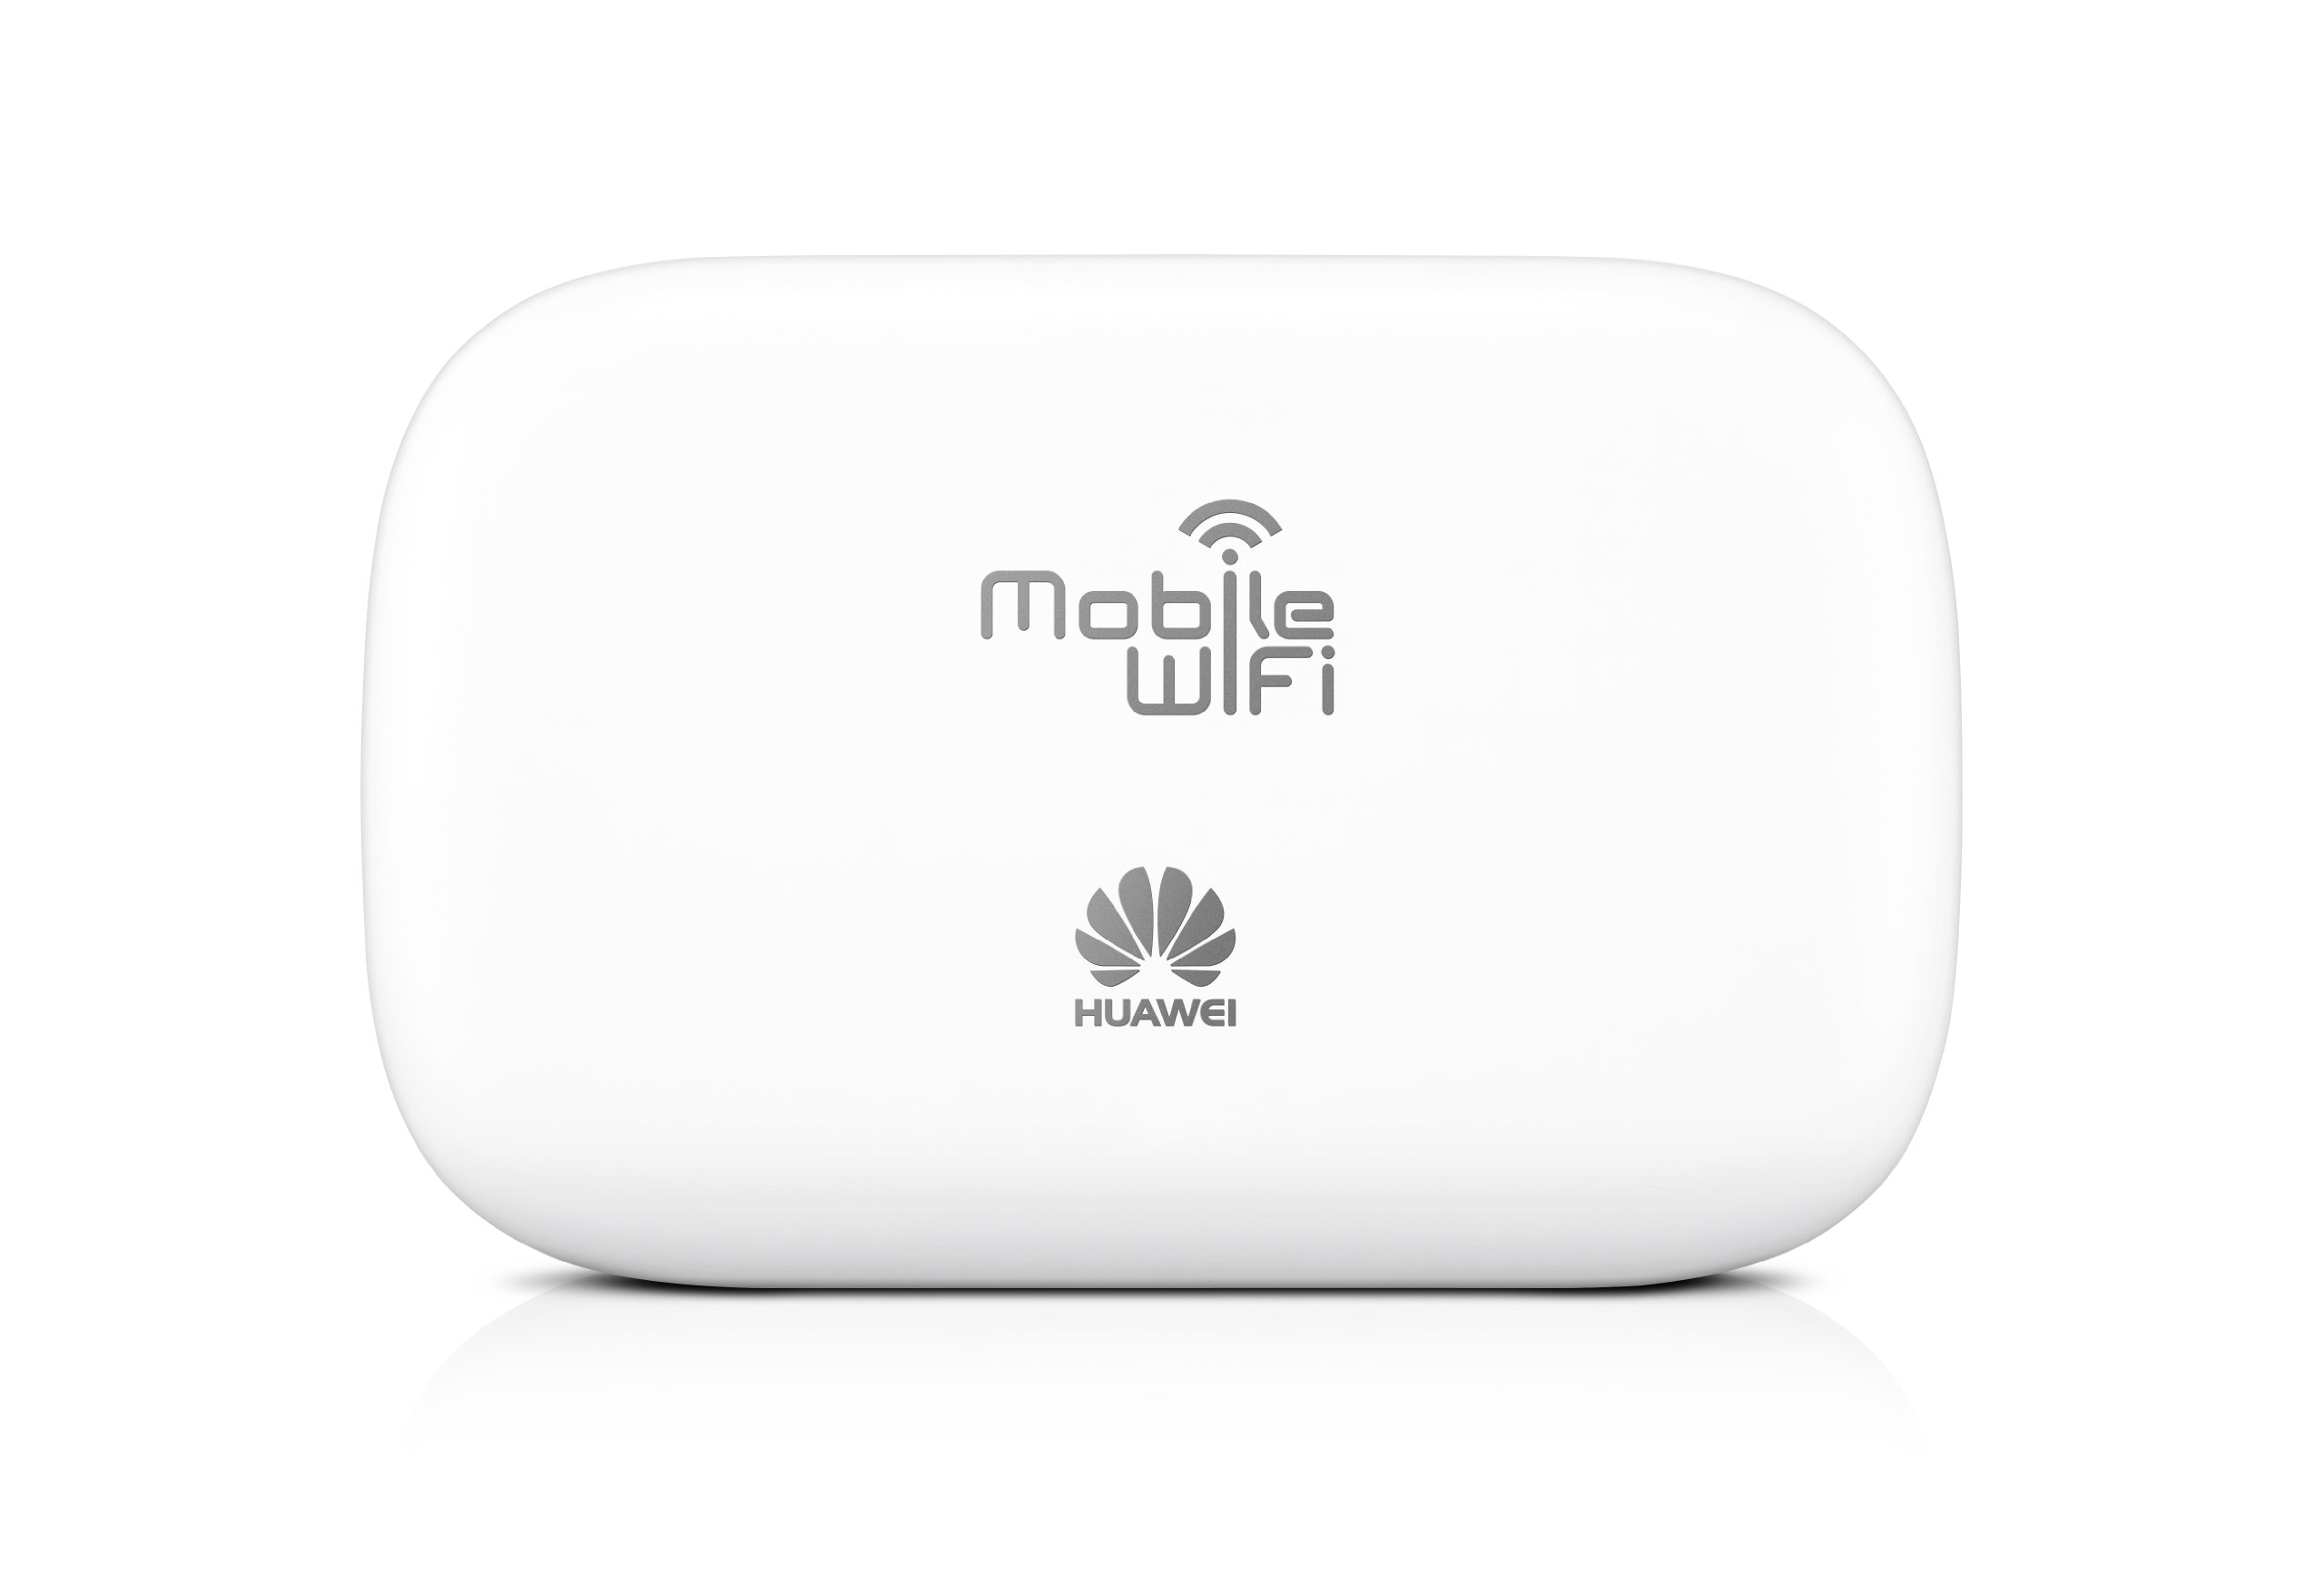 Huawei E5330Bs-2 3G Mobile WiFi Hotspot (3G in Europe, Asia, Middle East & Africa), OEM/ORIGINAL from Huawei. White by HUAWEI (Image #2)